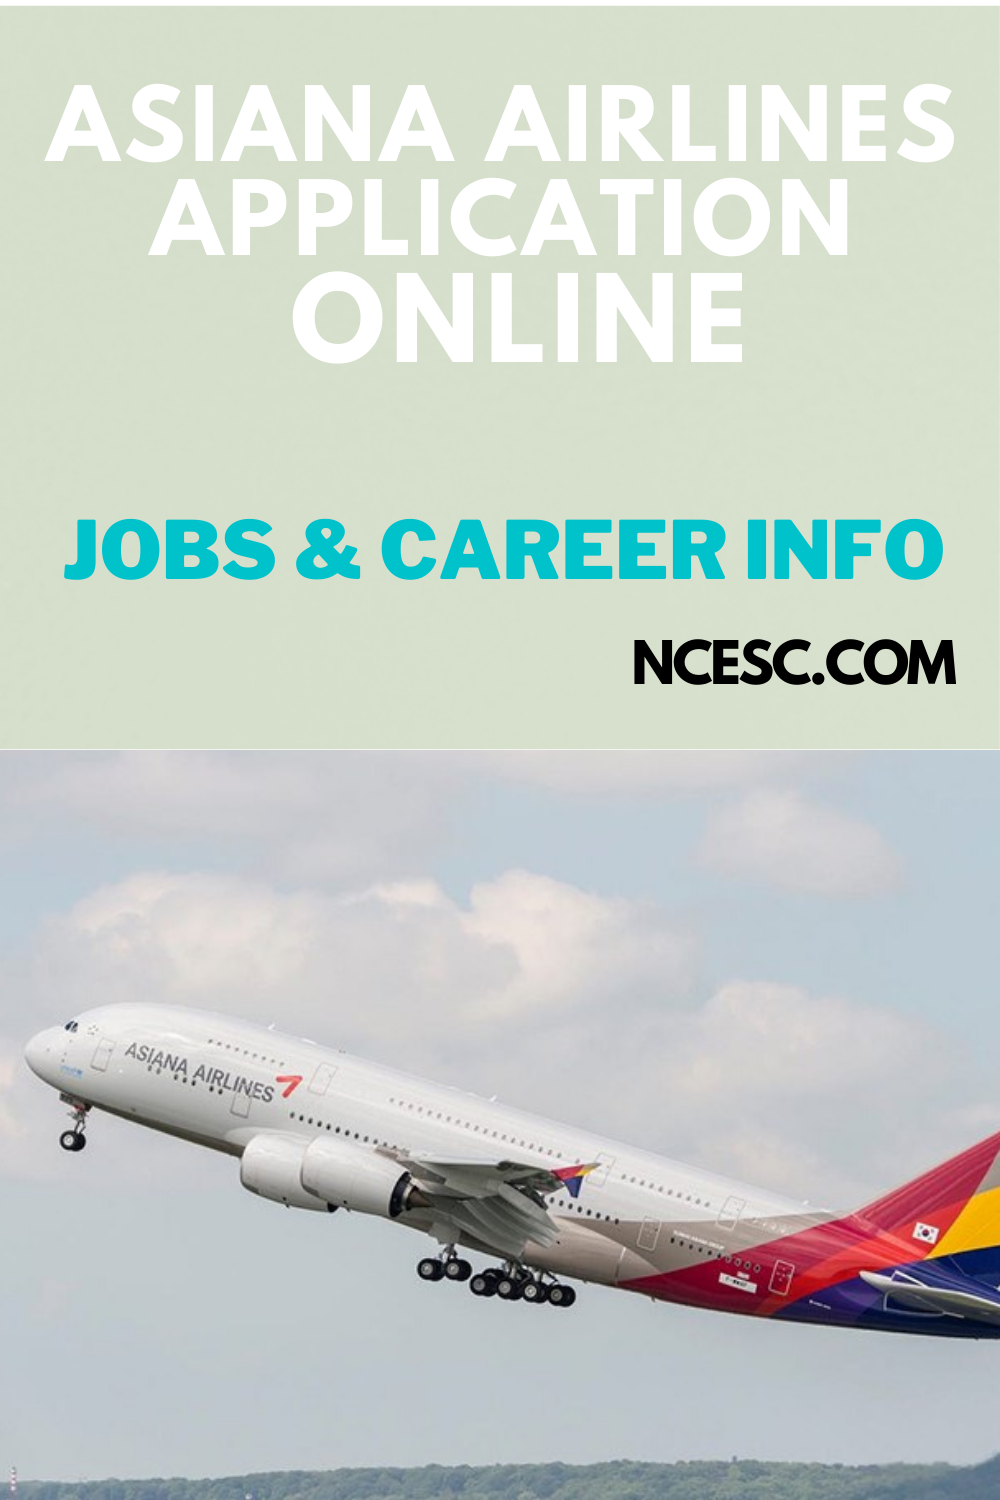 asiana airlines application